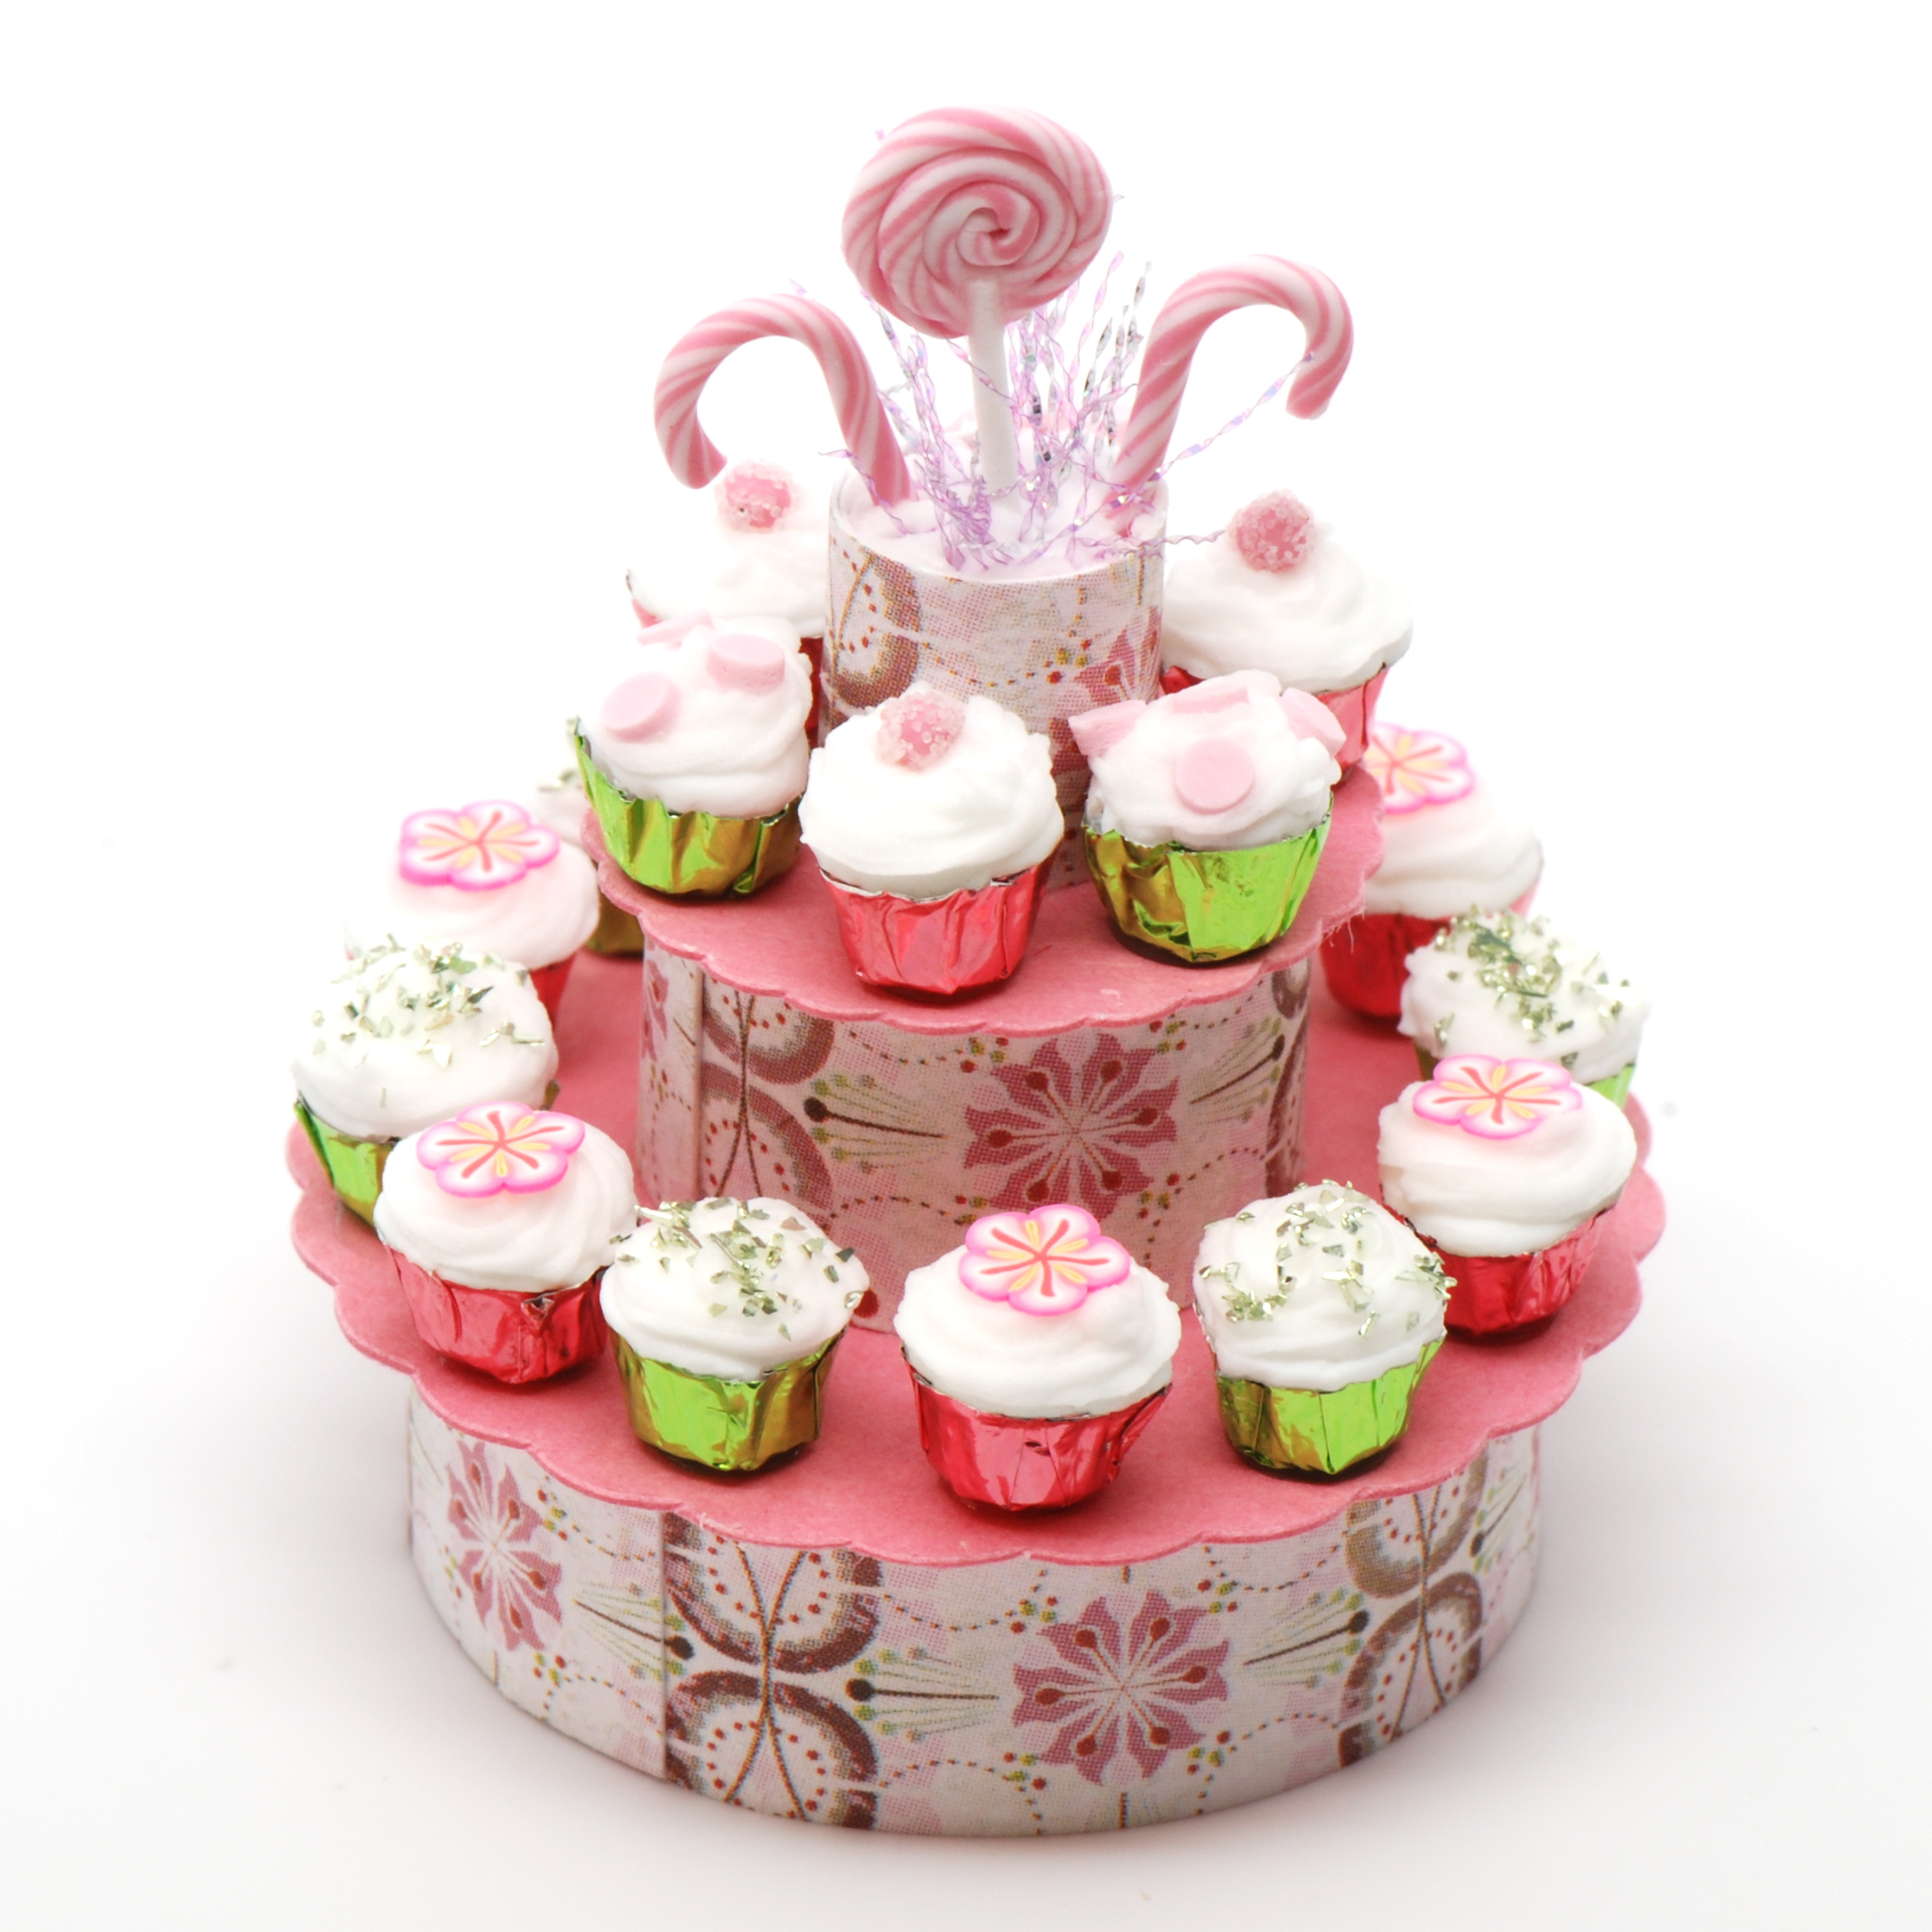 how to display cupcakes